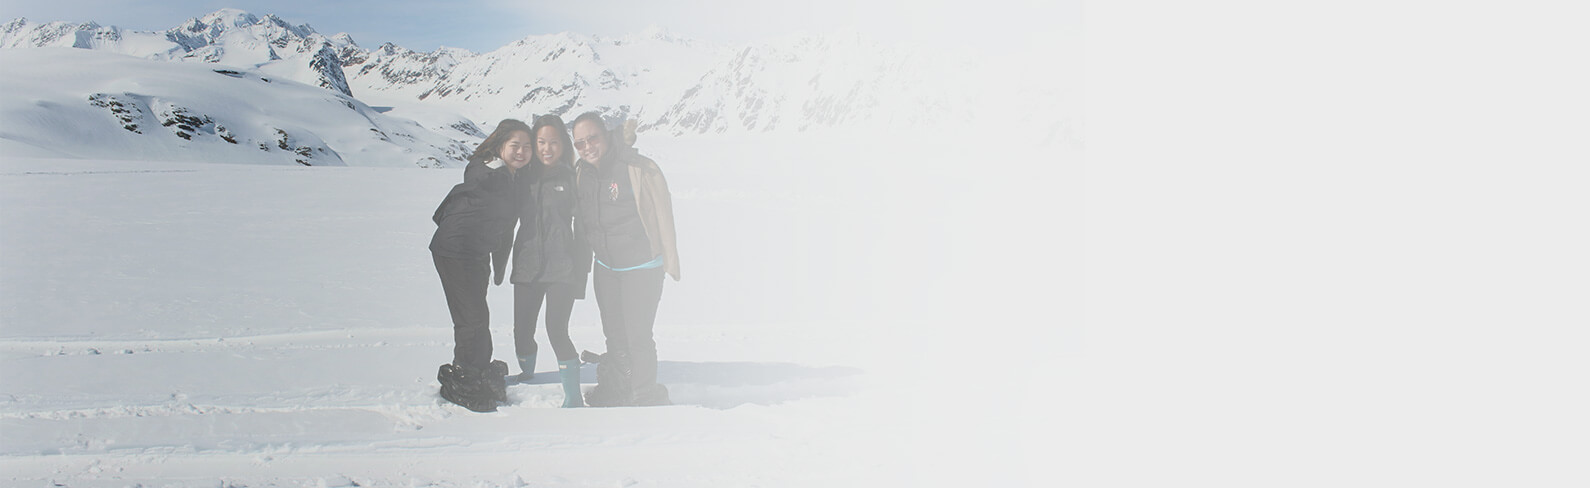 Jessica Cox and friends in the snow